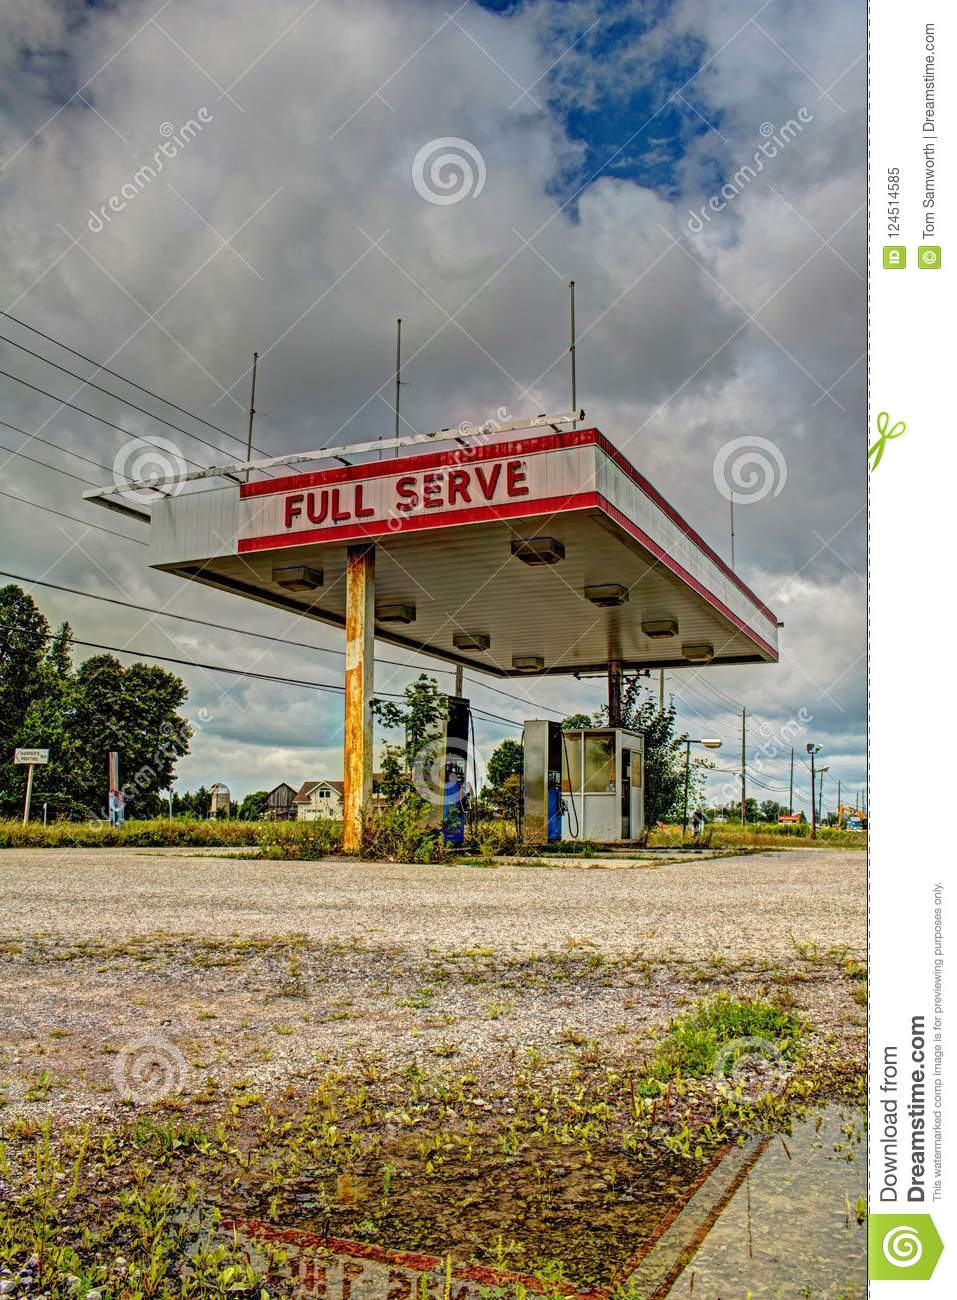 Abandoned Filling Station In Ontario Canada Stock Image Image Of Urban Highway 124514585